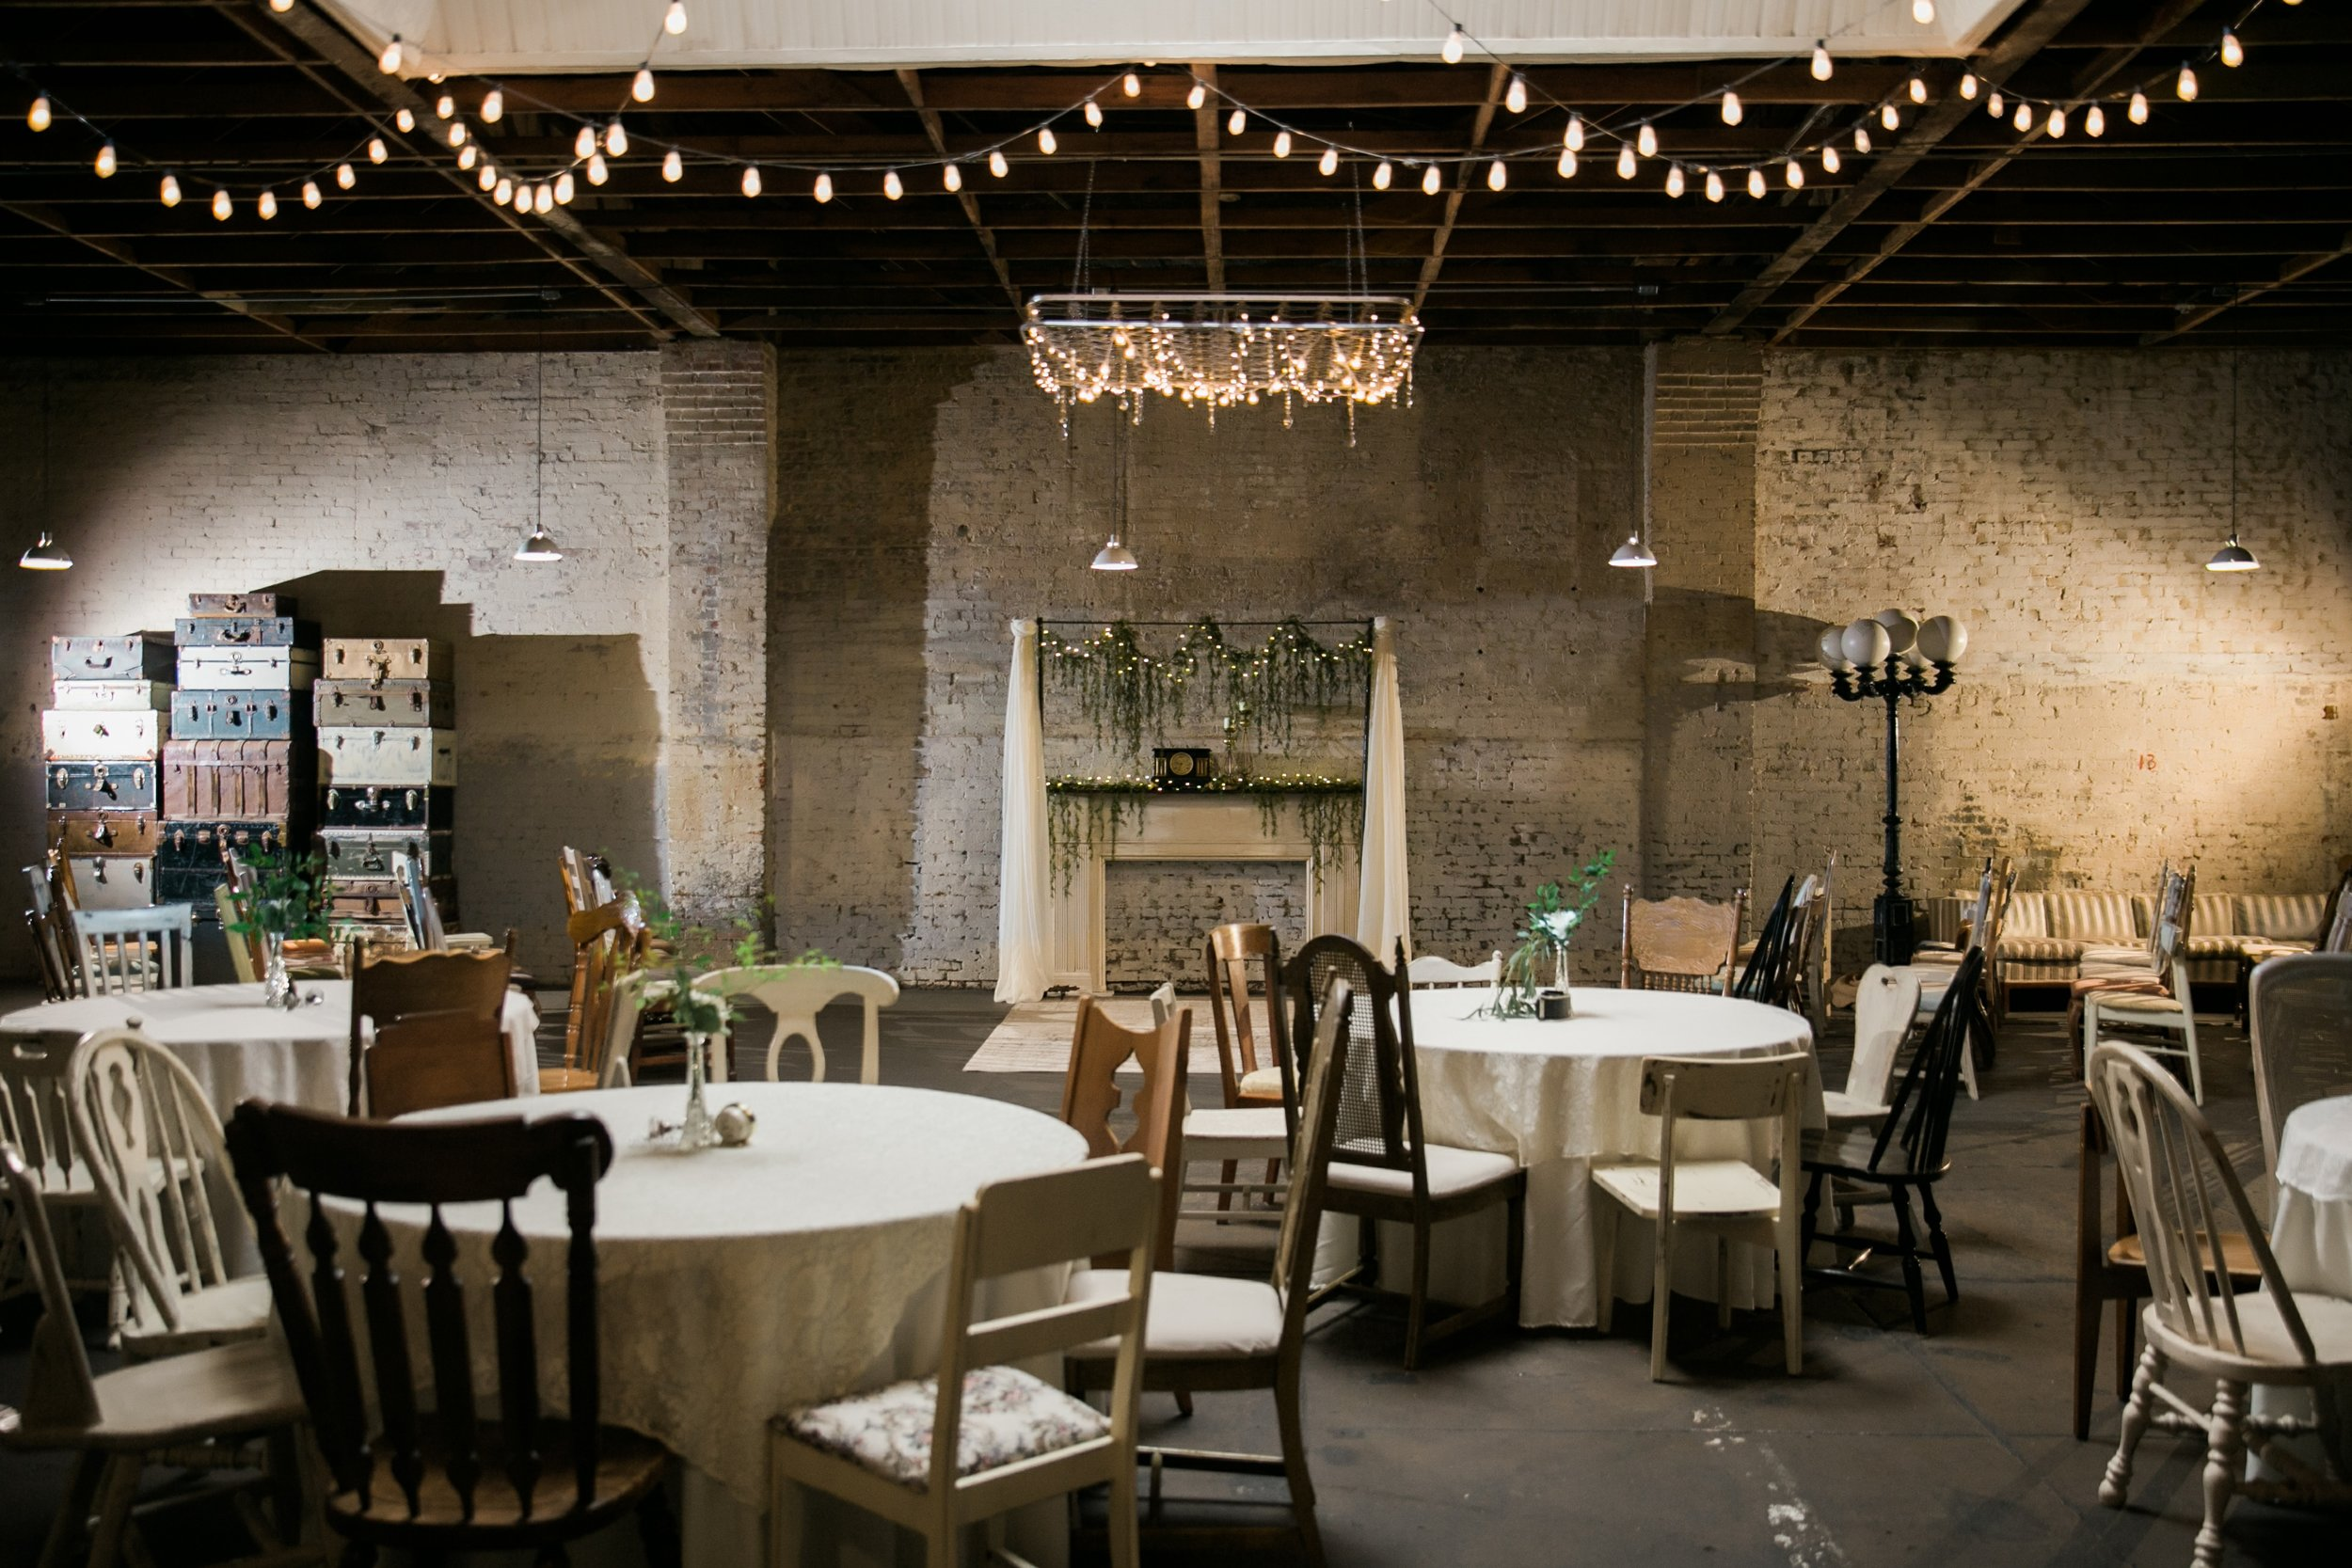 Magan-Landon-Surprise-wedding-at-southern-jeweled-warehouse-wichita-falls-texas-lauren-pinson-048.jpg